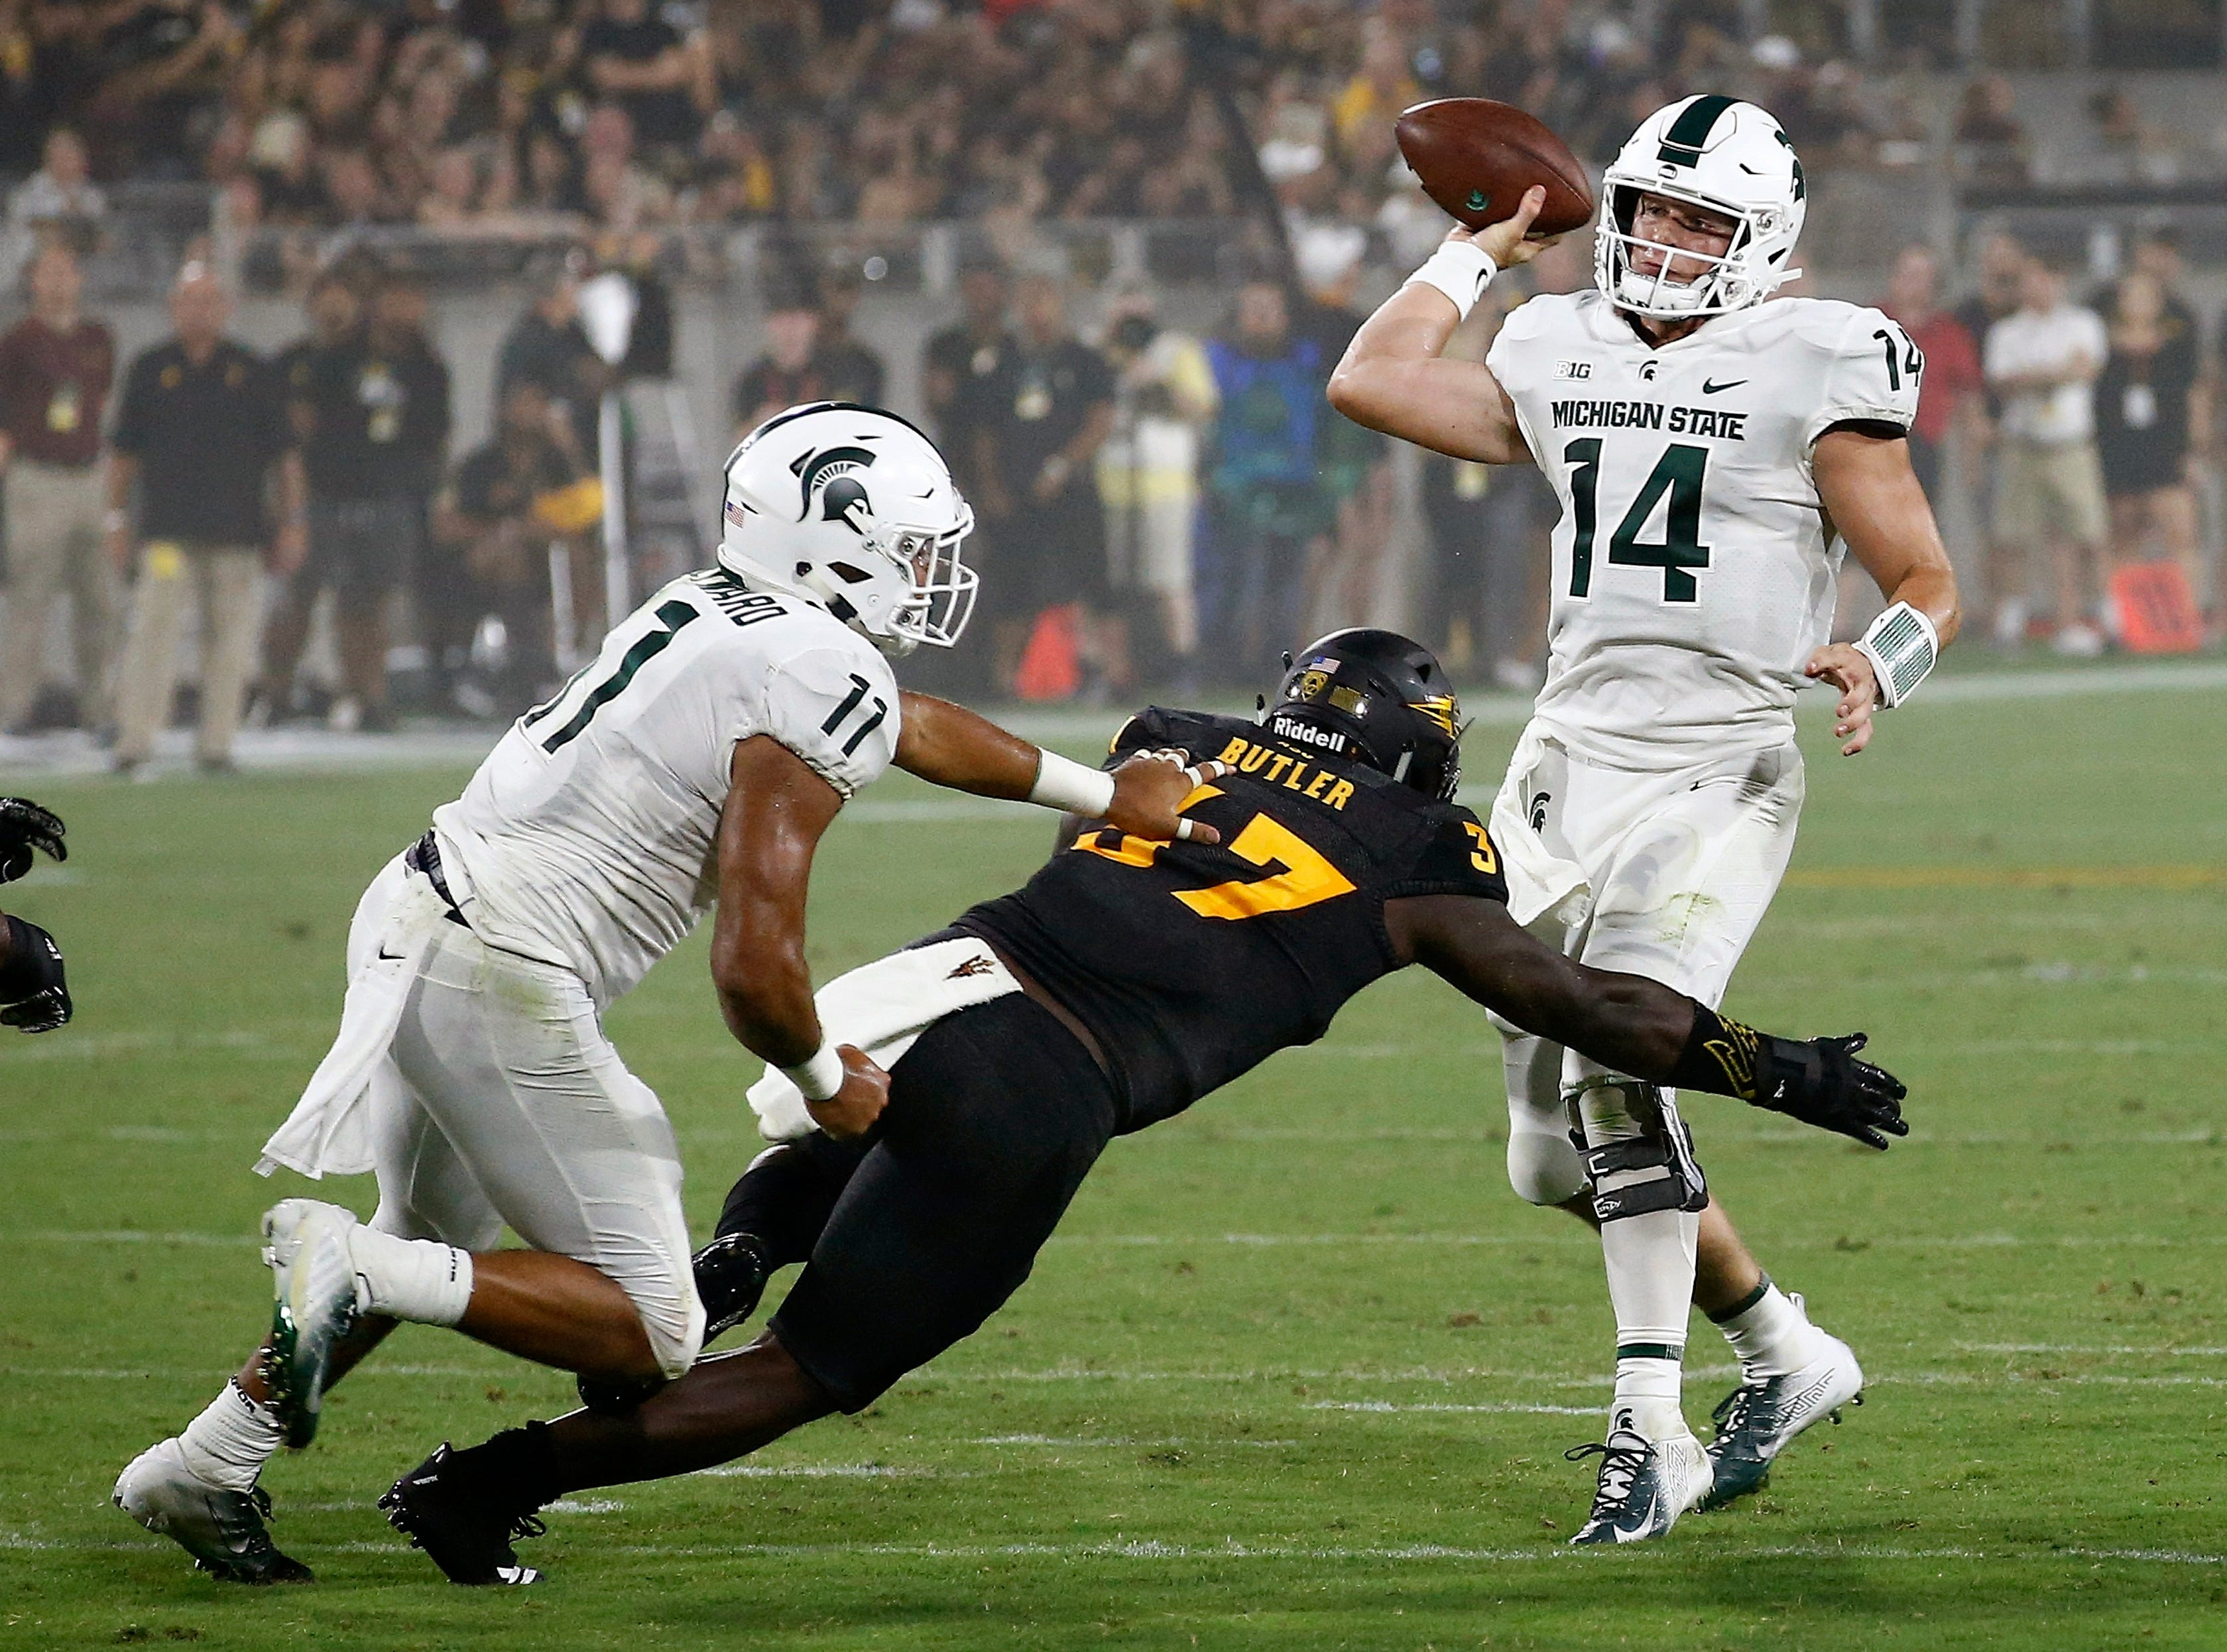 Michigan State quarterback Brian Lewerke (14) gets off a pass as he is pressured by Arizona State linebacker Darien Butler (37) as Michigan State running back Connor Heyward (11) tries to make a block during the first half of an NCAA college football game Saturday, Sept. 8, 2018, in Tempe, Ariz. (AP Photo/Ross D. Franklin)